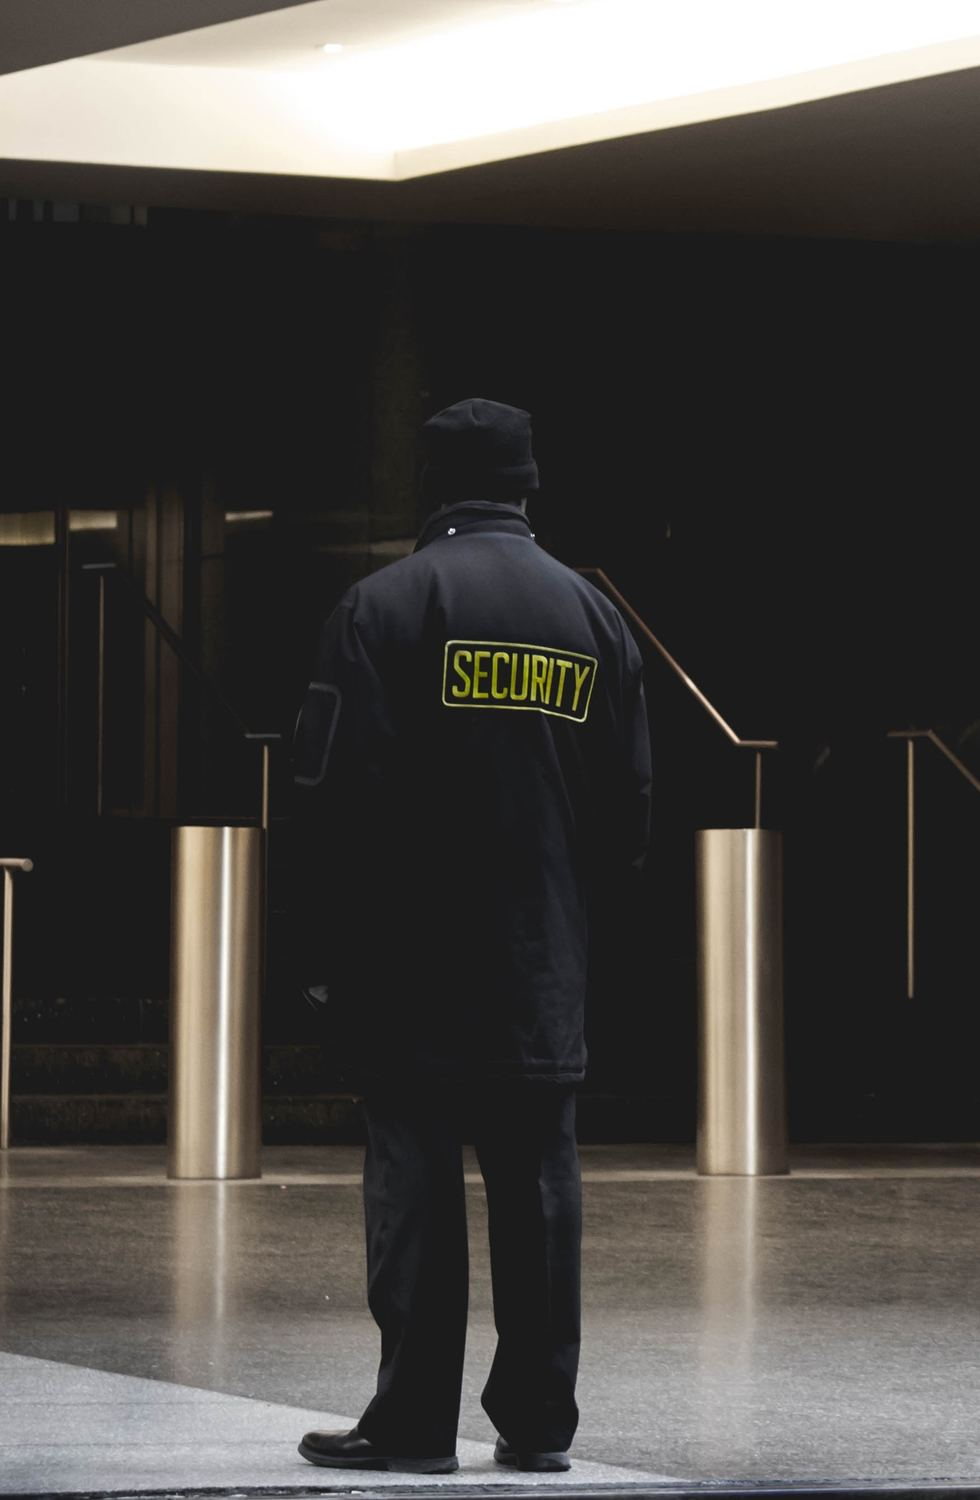 Man with Security jacket